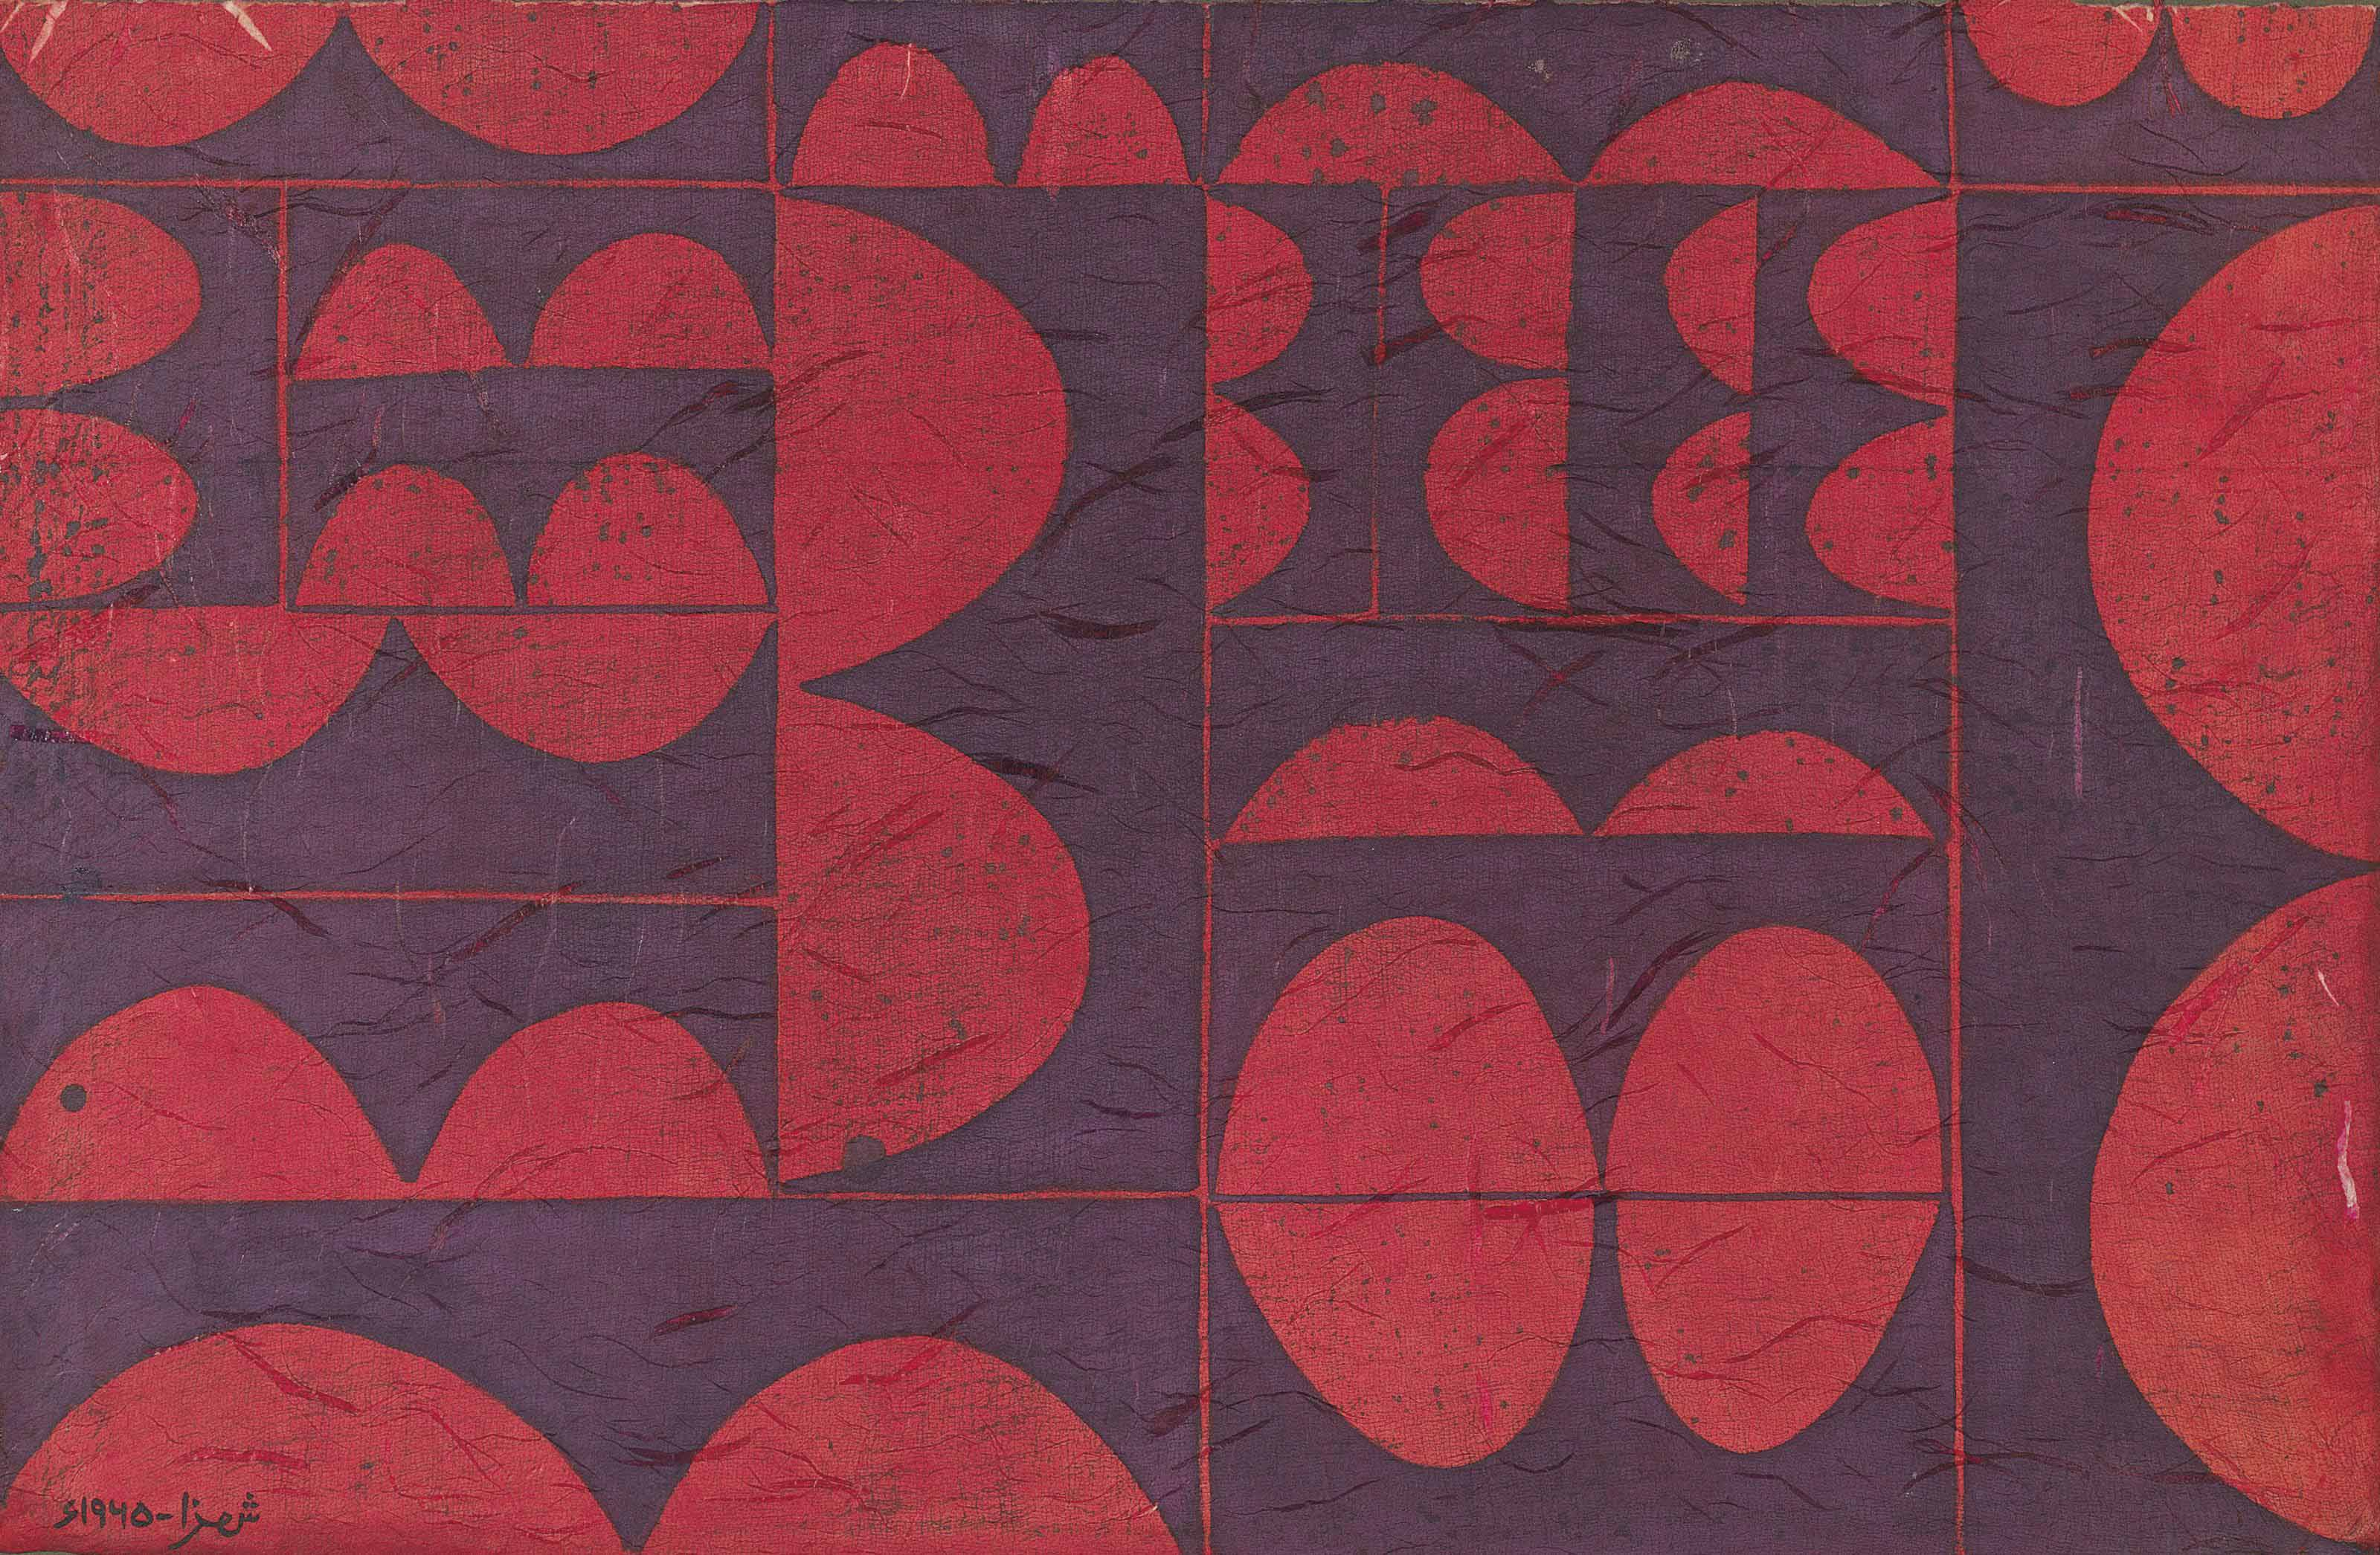 Untitled (Red and Blue Composition)